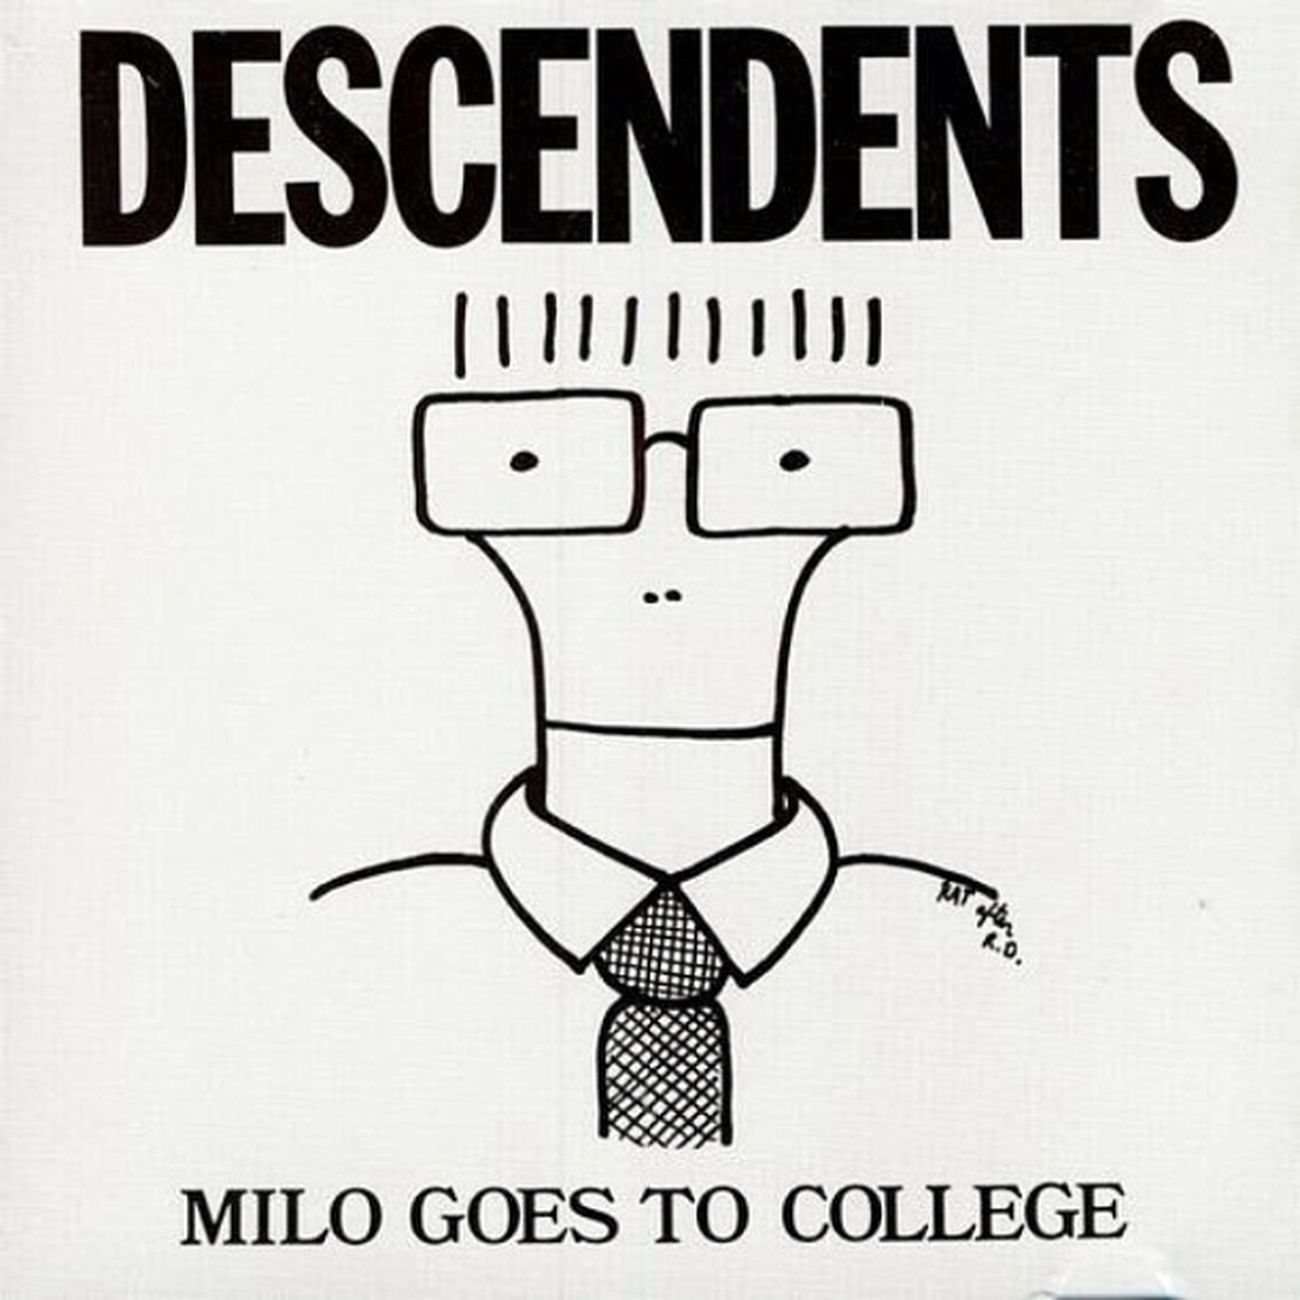 Descendents started school for photography this week